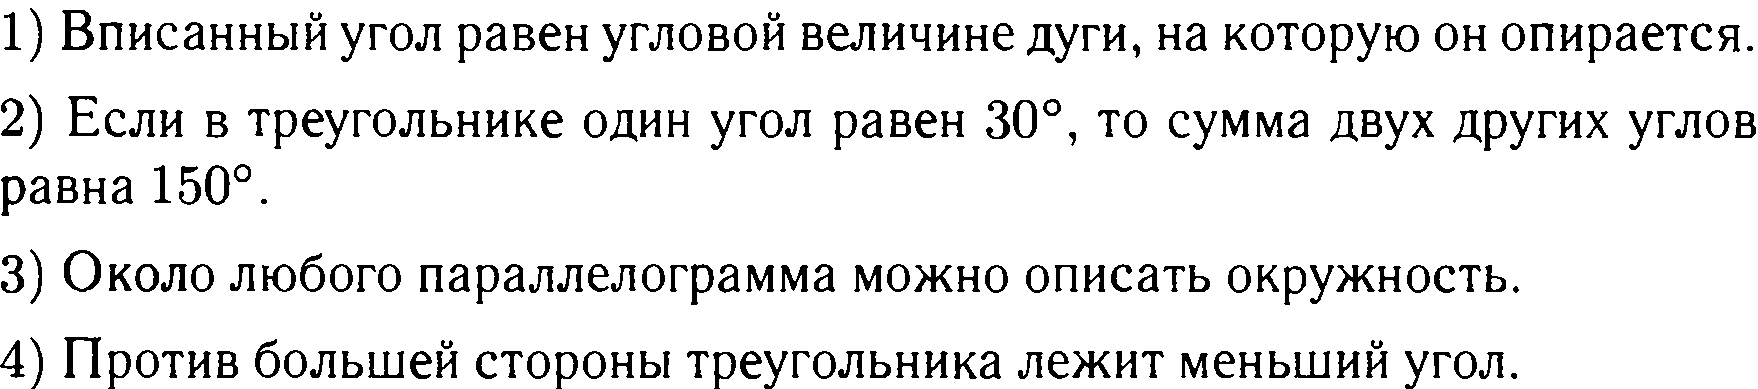 http://doc4web.ru/uploads/files/77/77306/hello_html_7282d913.png